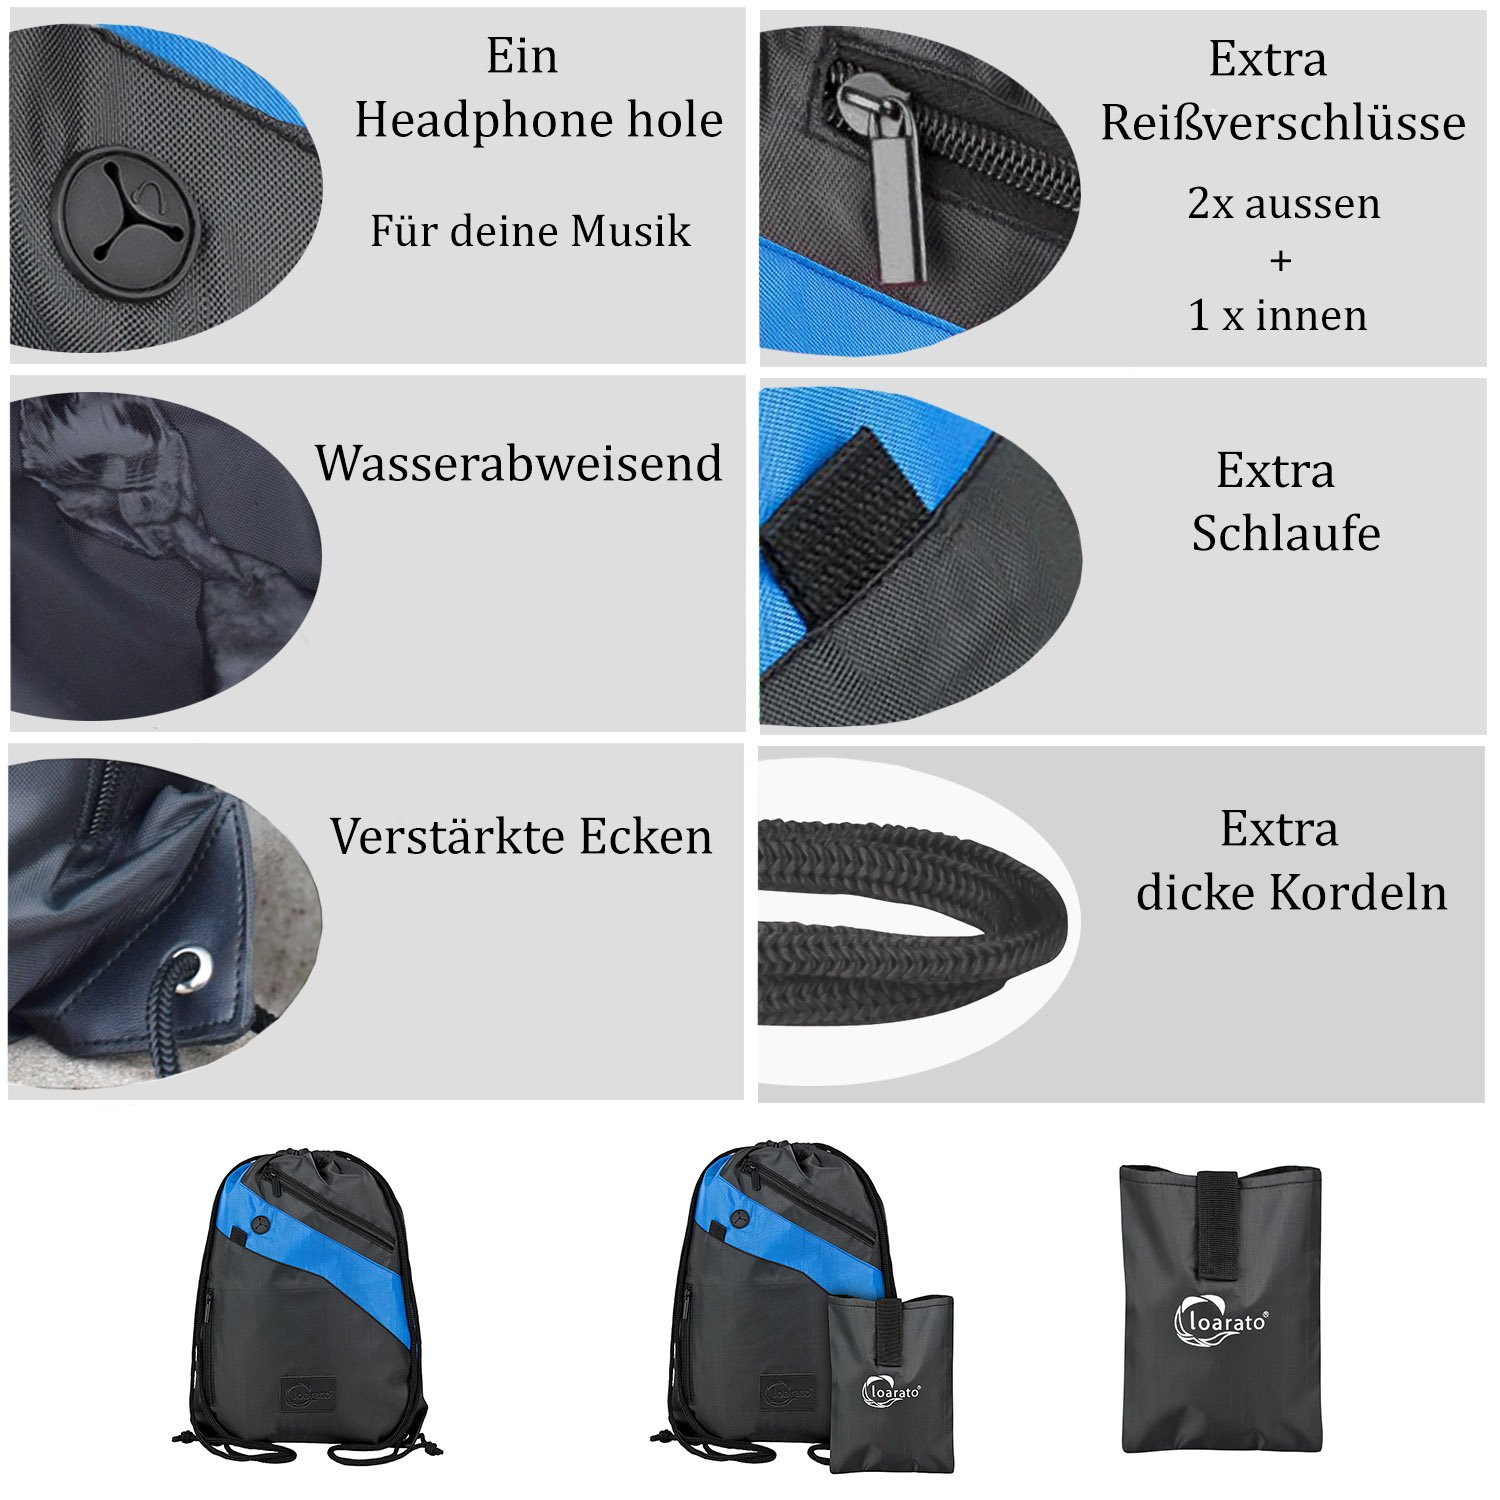 Loarato premium gym bag is water-resistant – the drawstring bag has 3 extra zip pockets and a headphone hole (black-blue)